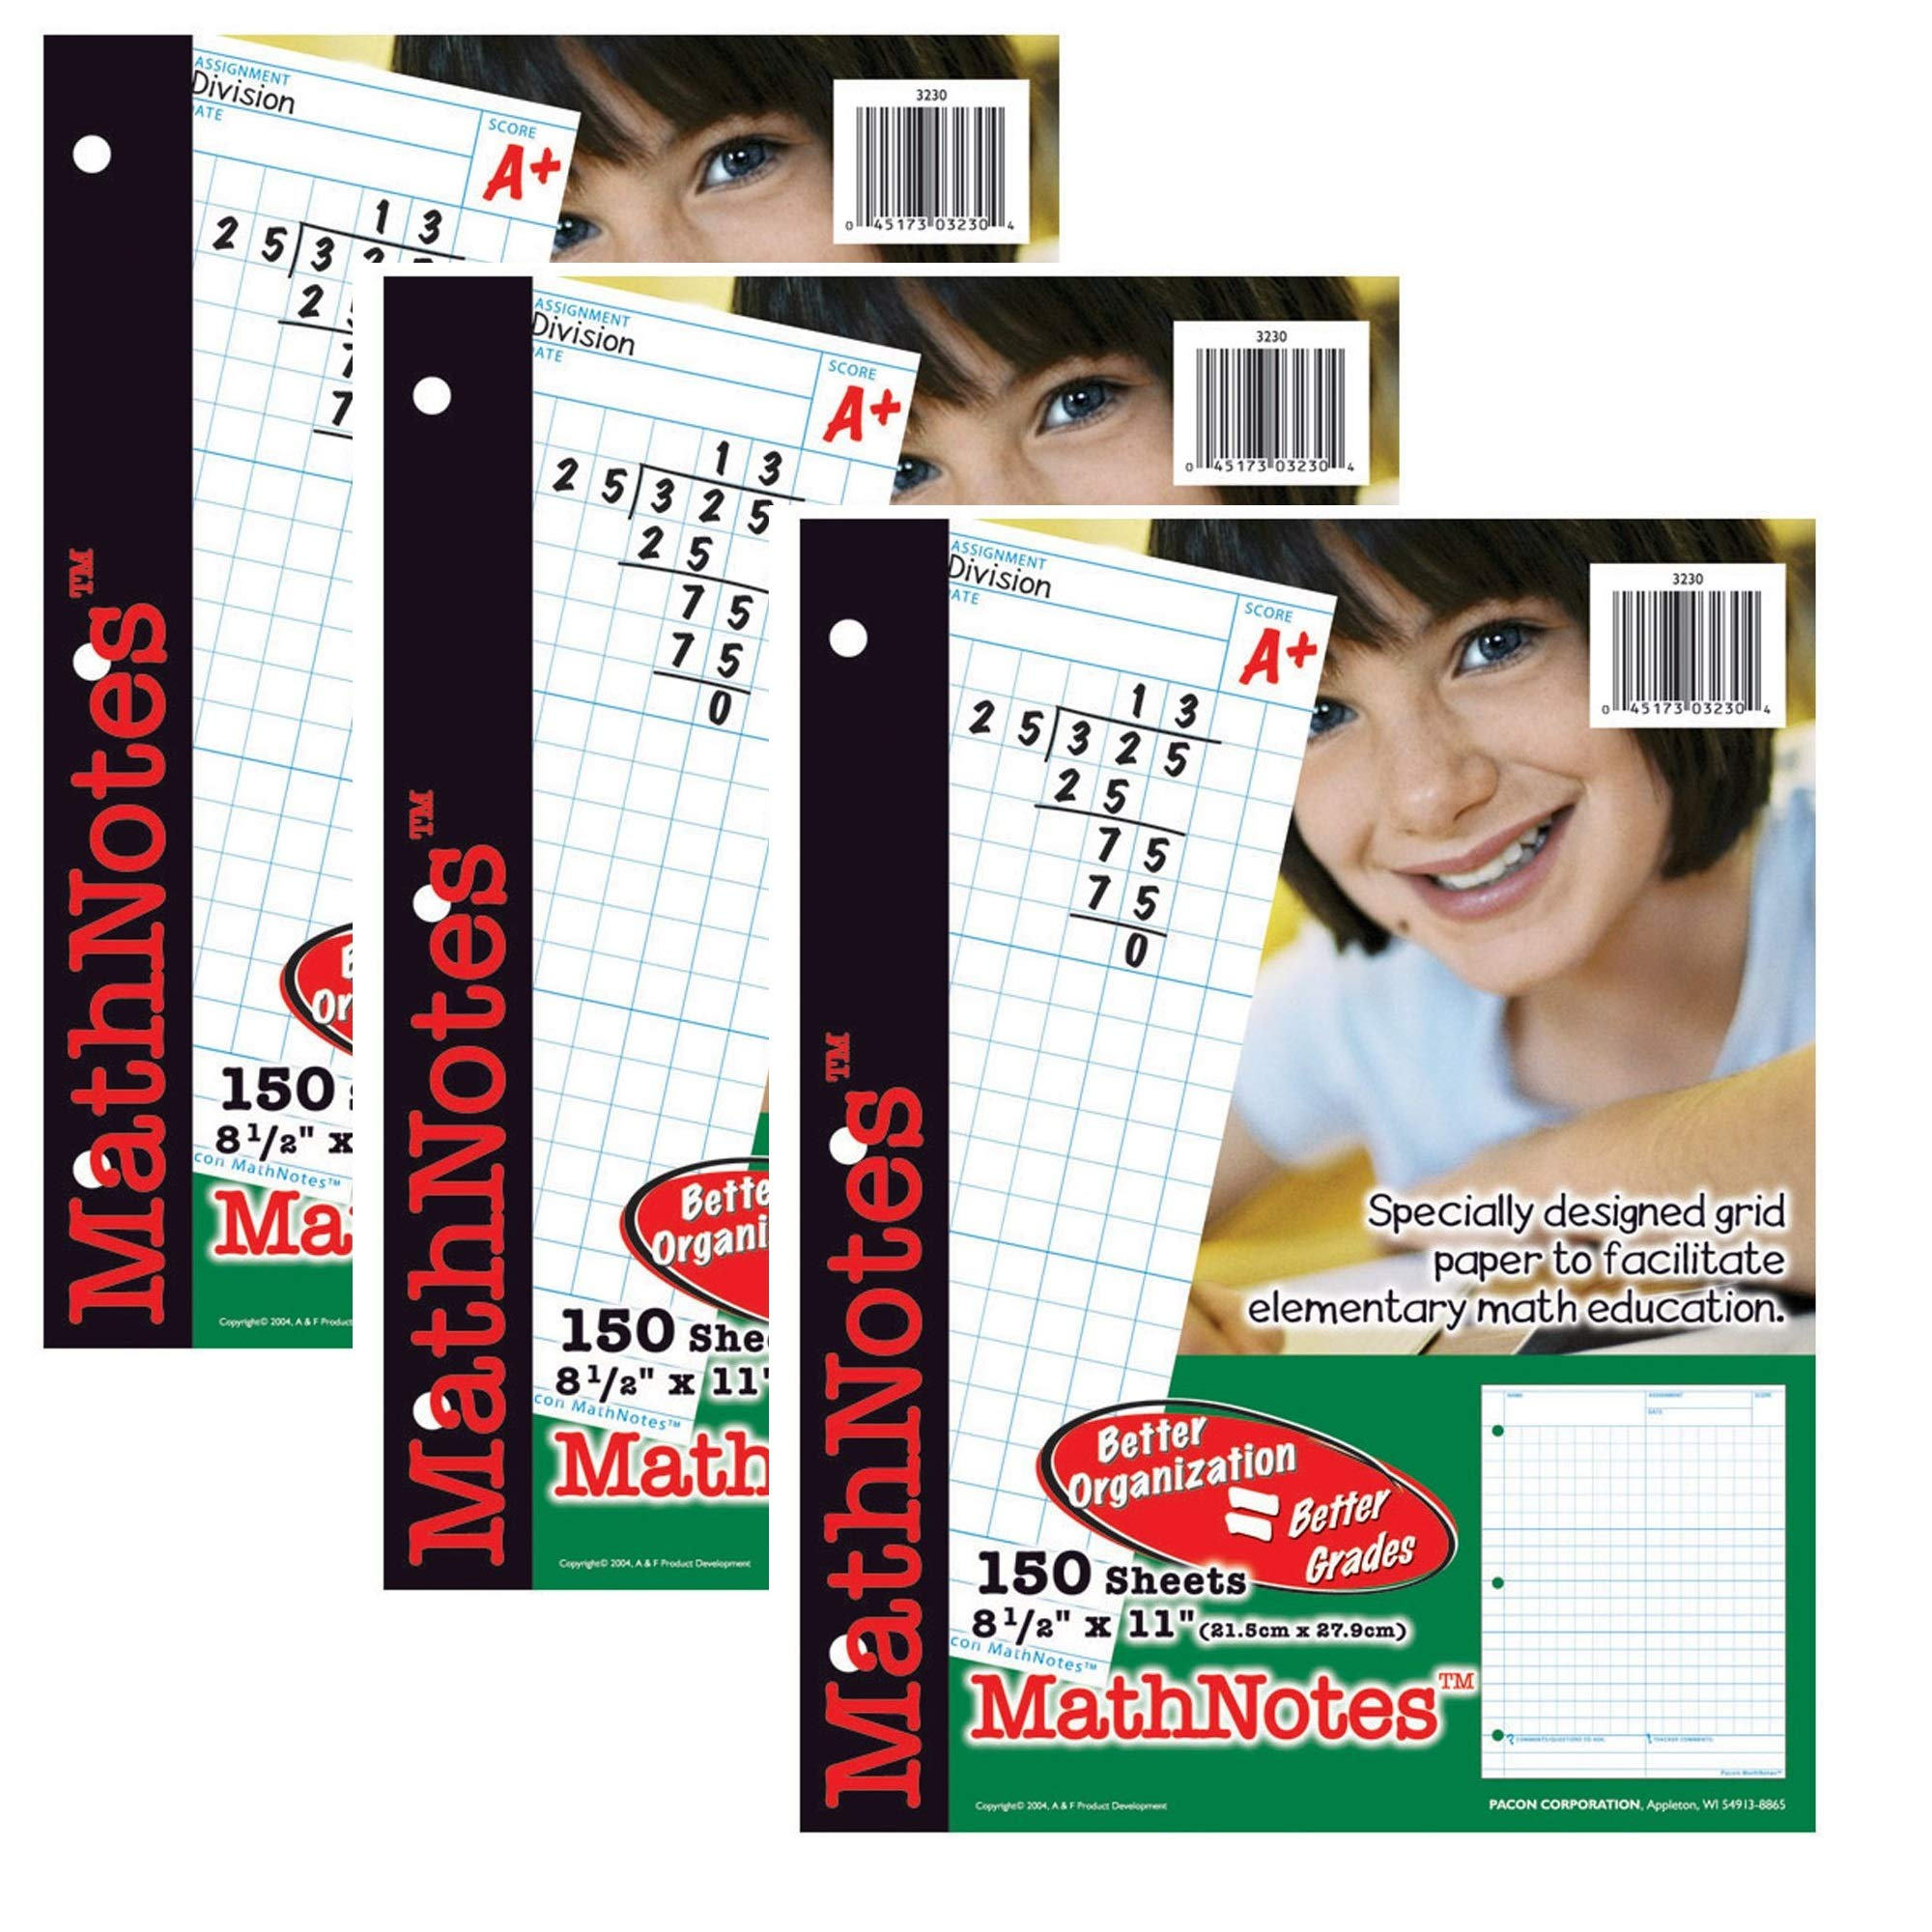 MathNOtes 3230 3-Hole Punched Grid Paper, 8-1/2'' x 11'' Size, 1/2'' Grid Ruling (Pack of 150), 3 PACK by MathNOtes